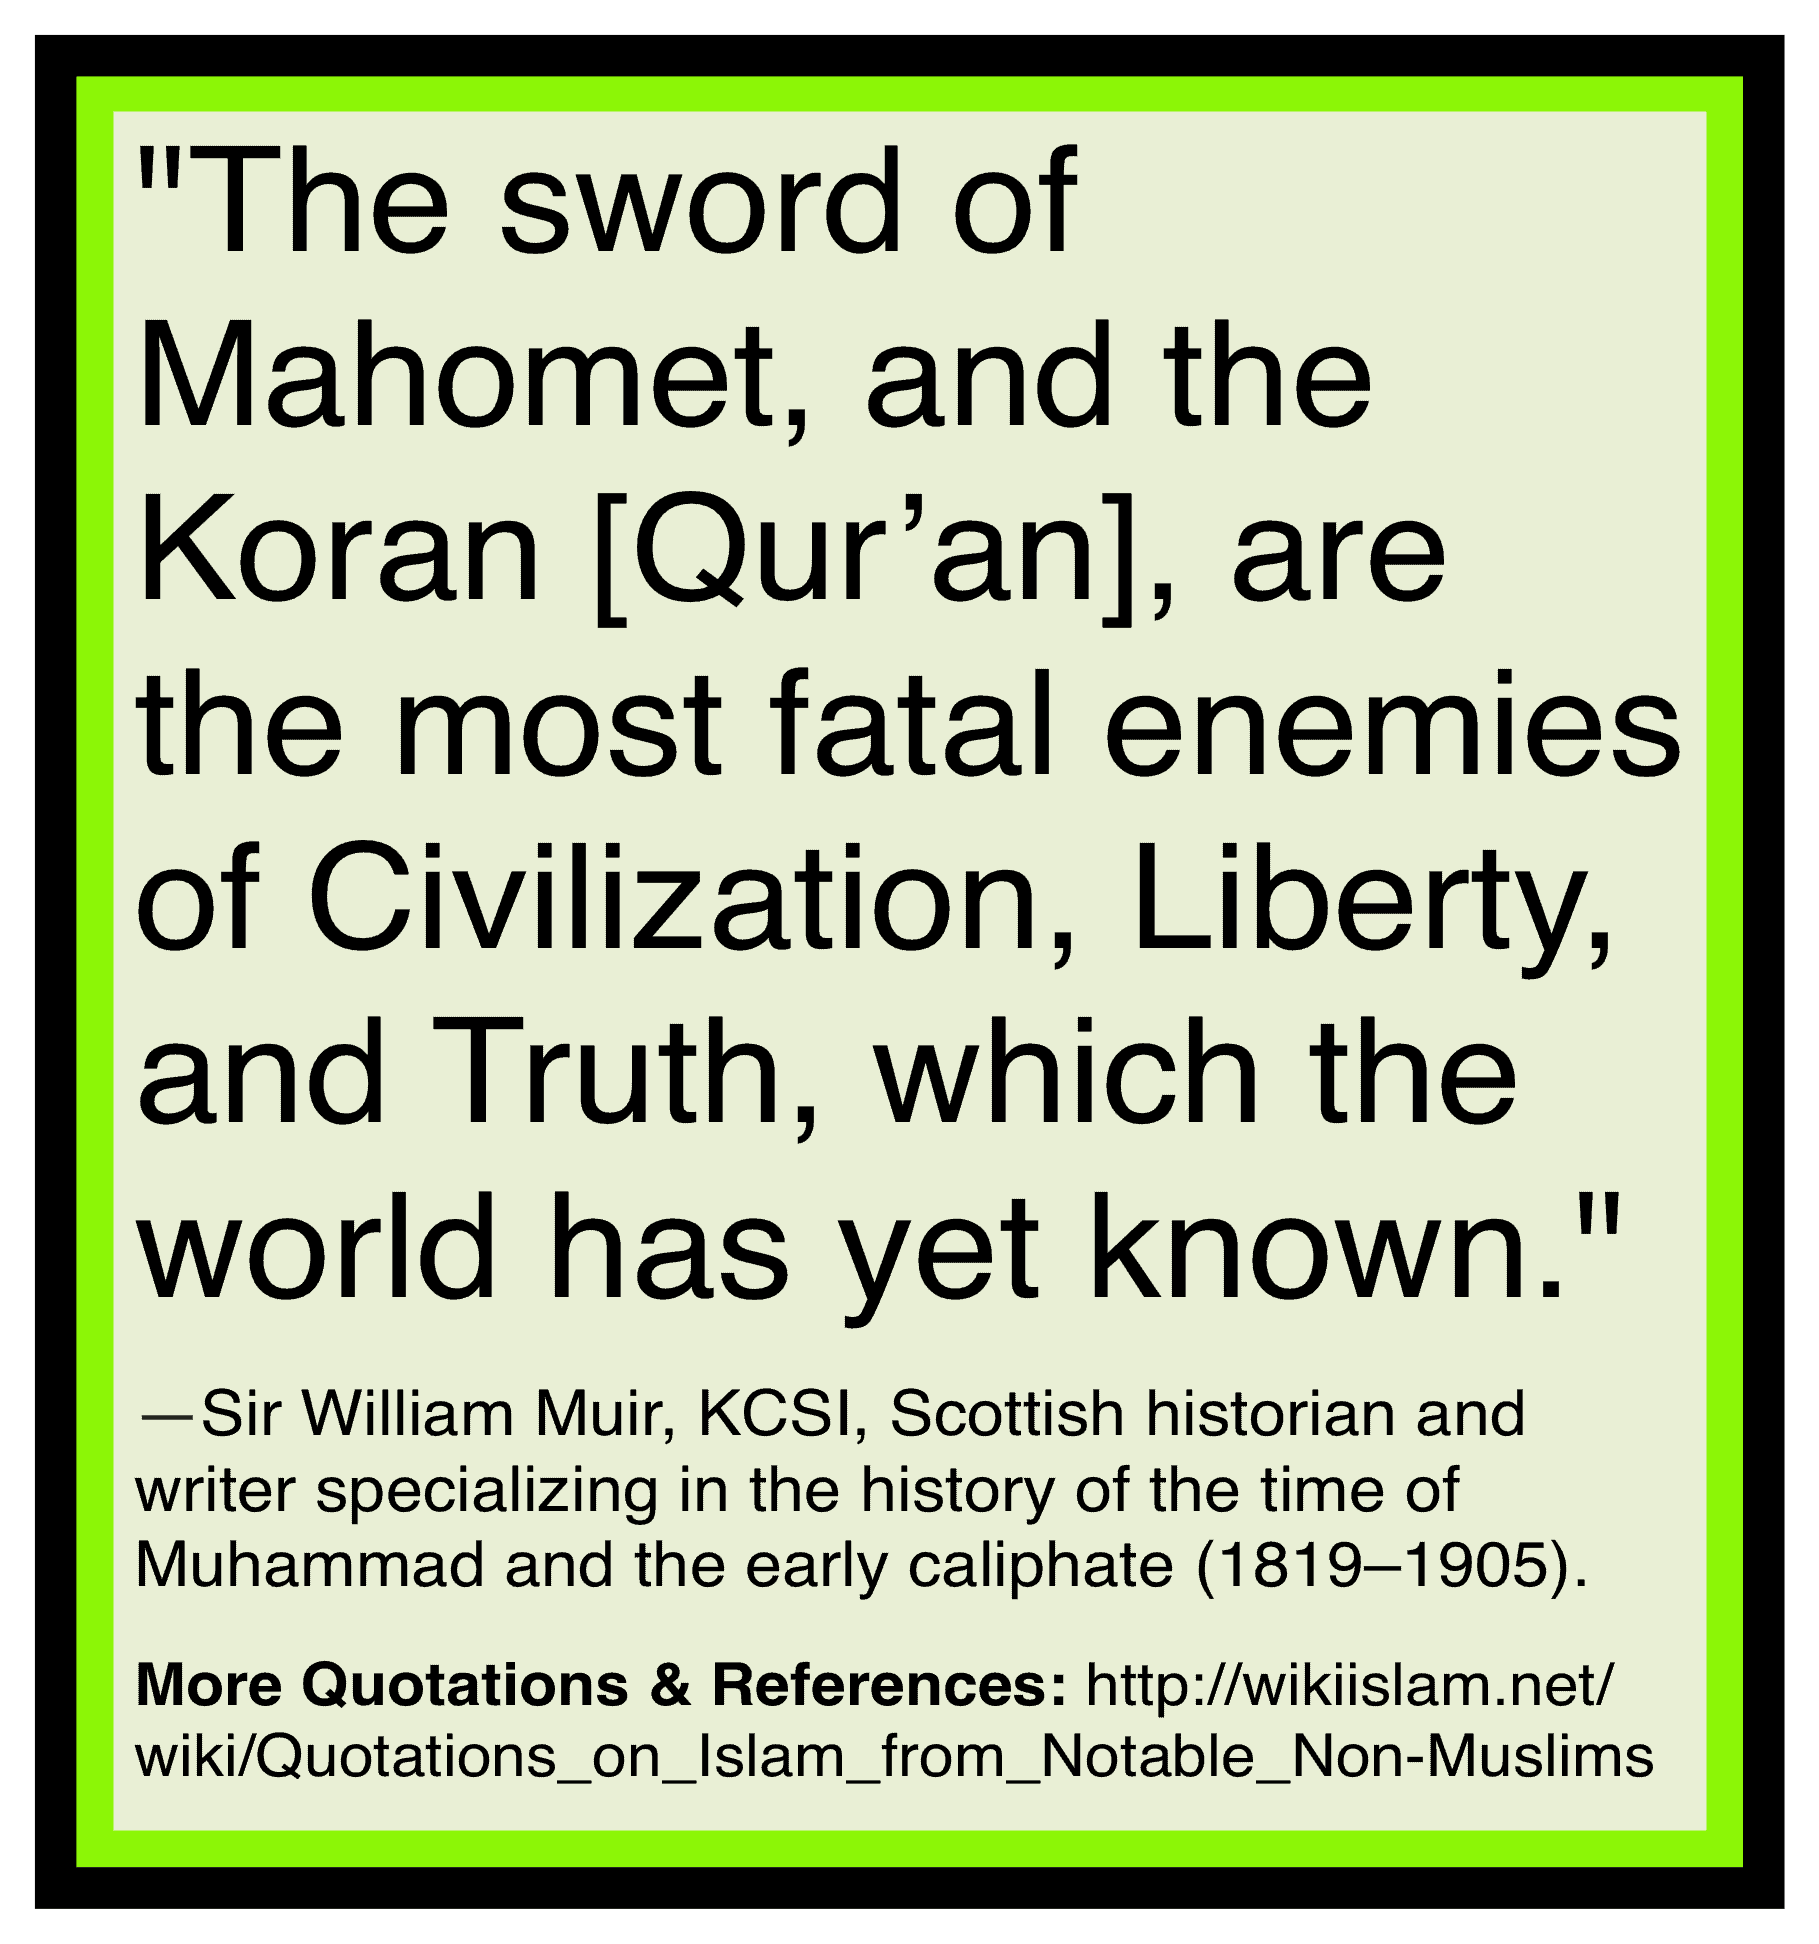 Islam is the enemy of civilization